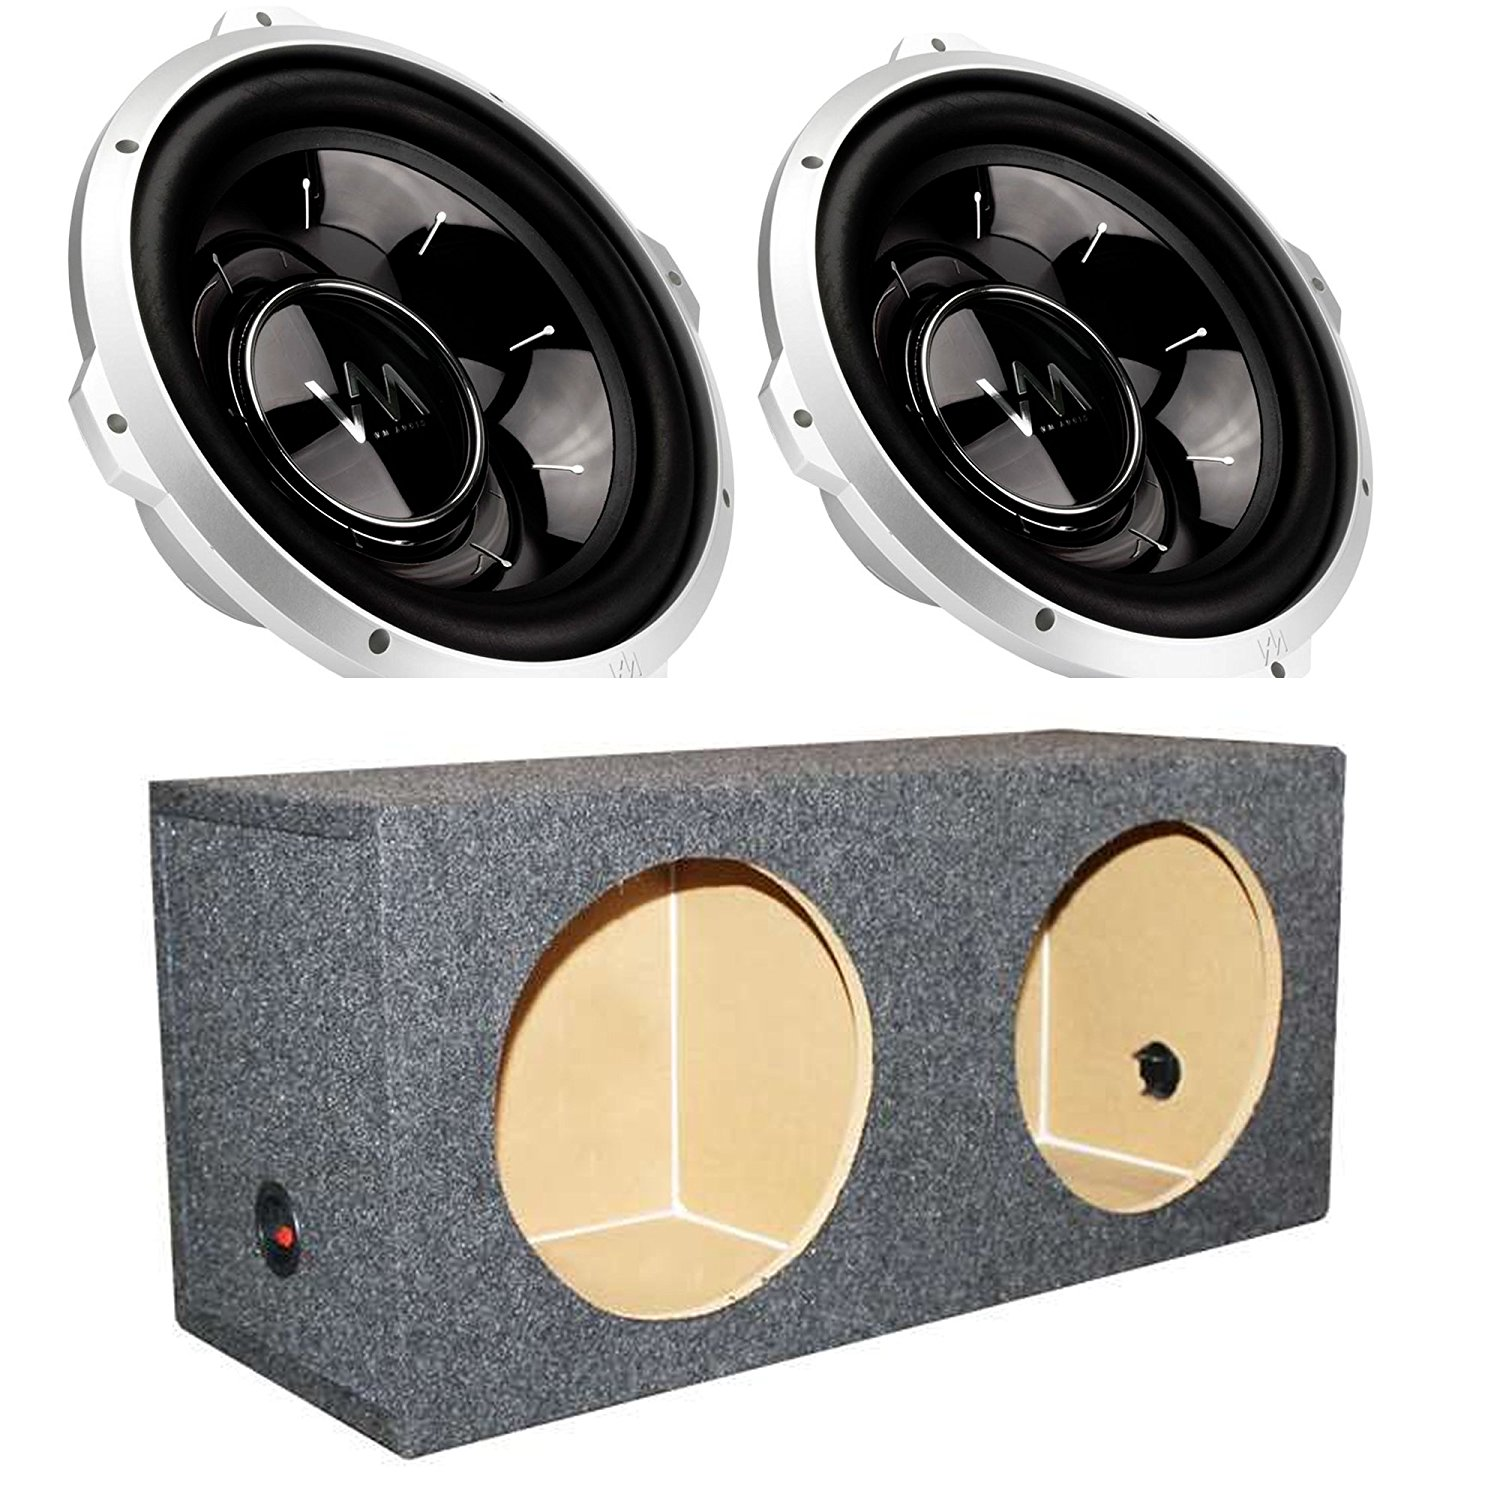 hight resolution of 2 vm audio srw12 12 1000w subwoofers q power dual sealed sub box enclosure